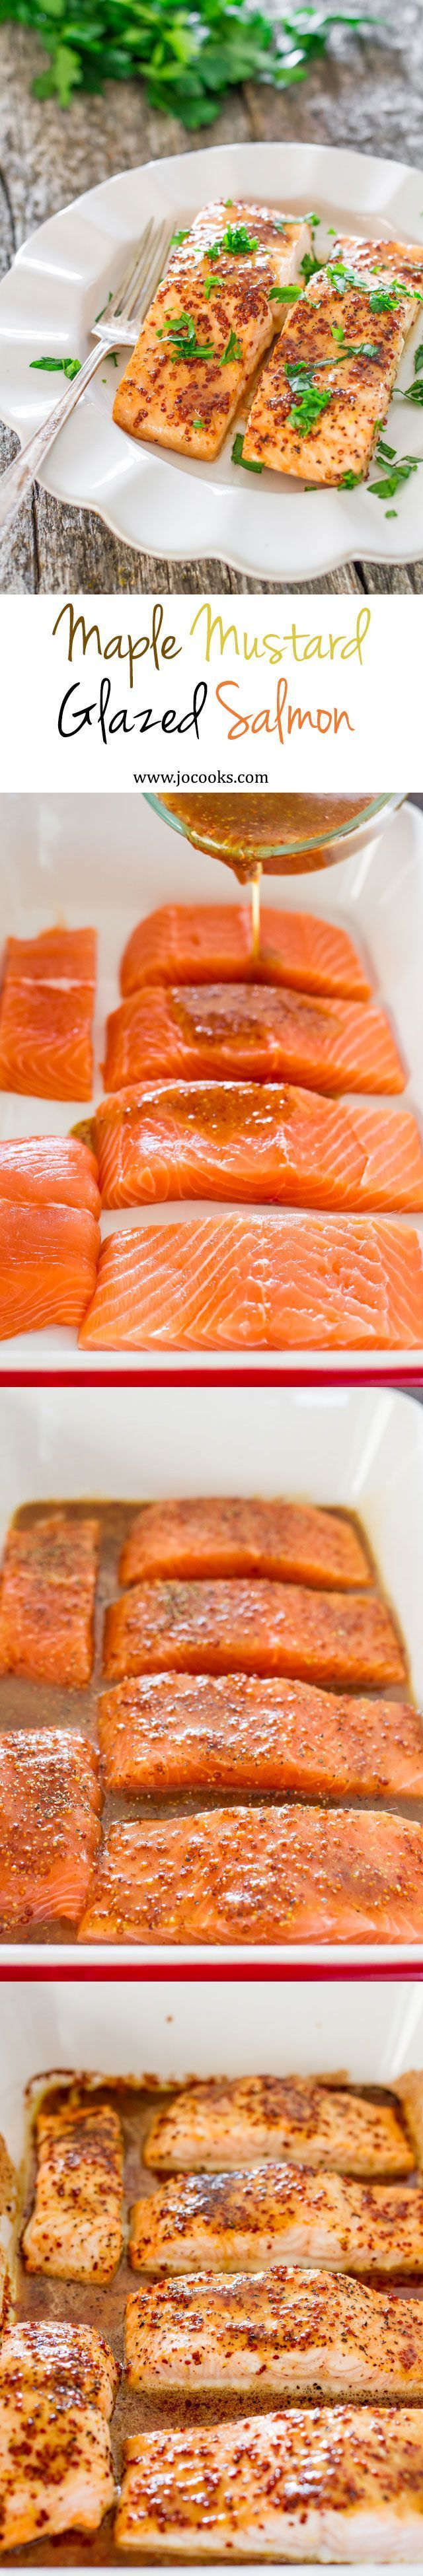 Maple Mustard Glazed Salmon - so good! small portions - great flavor - healthy recipe!